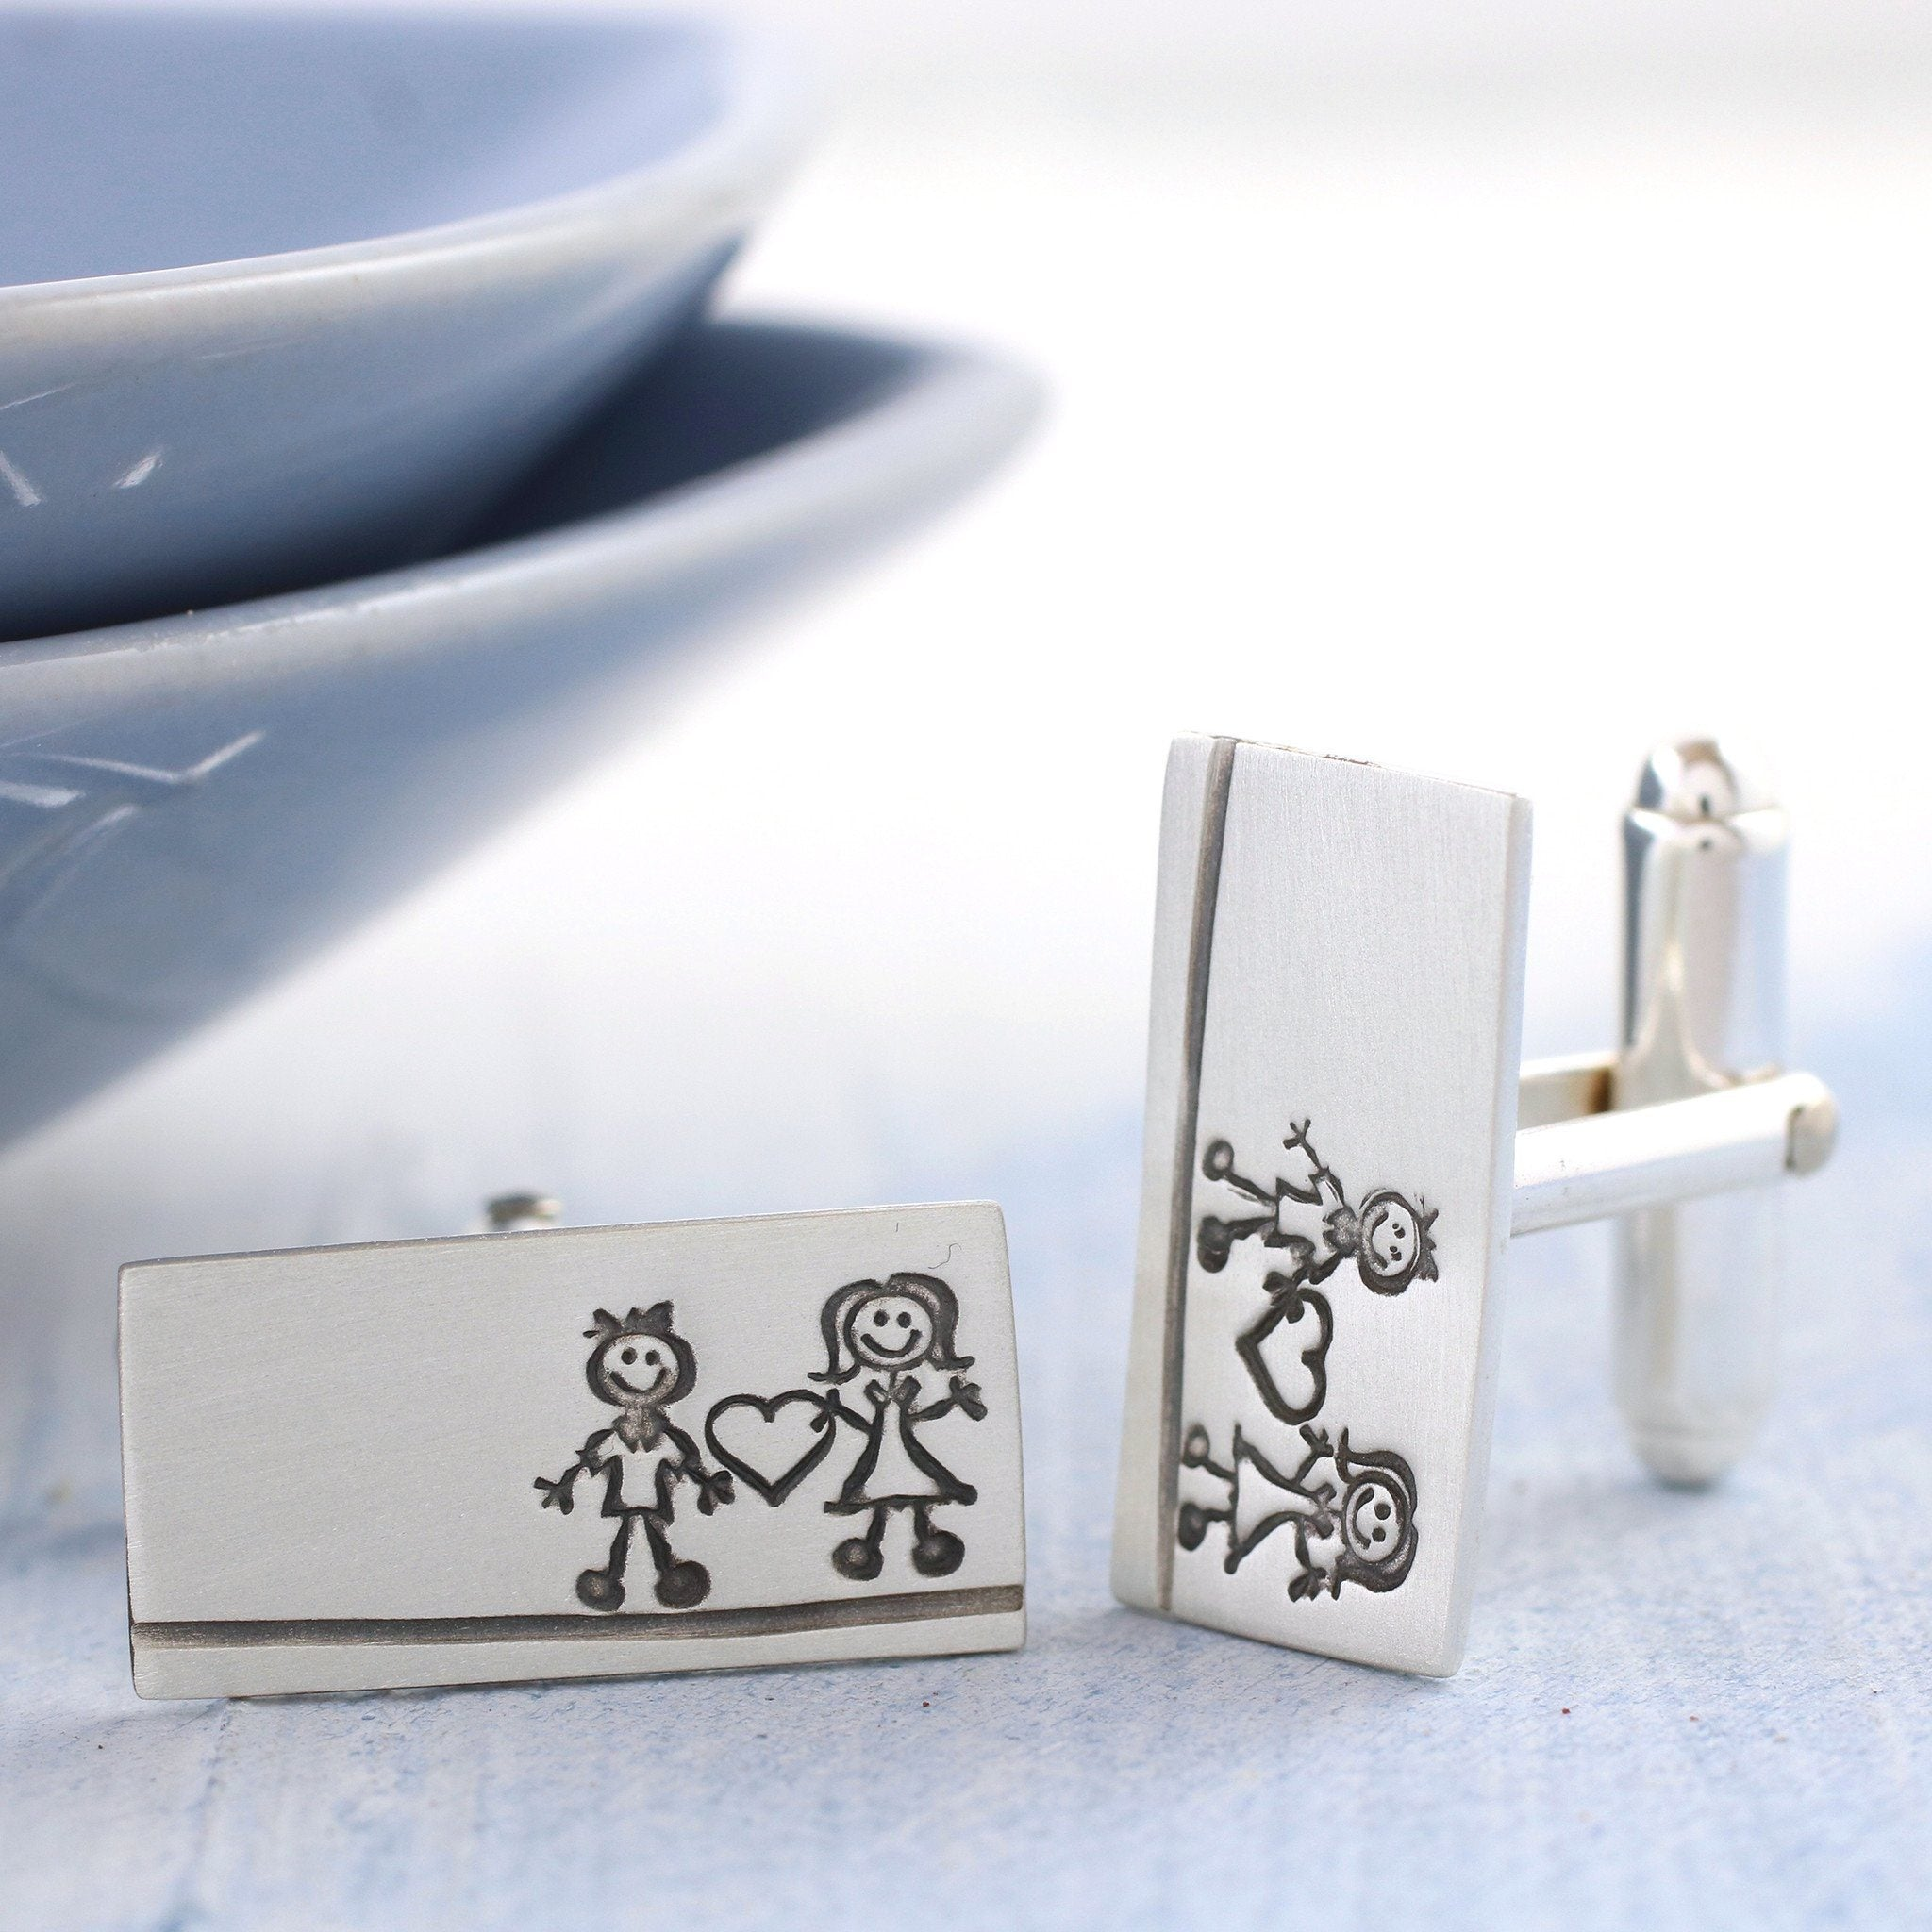 Valentine's Day cufflinks fot him